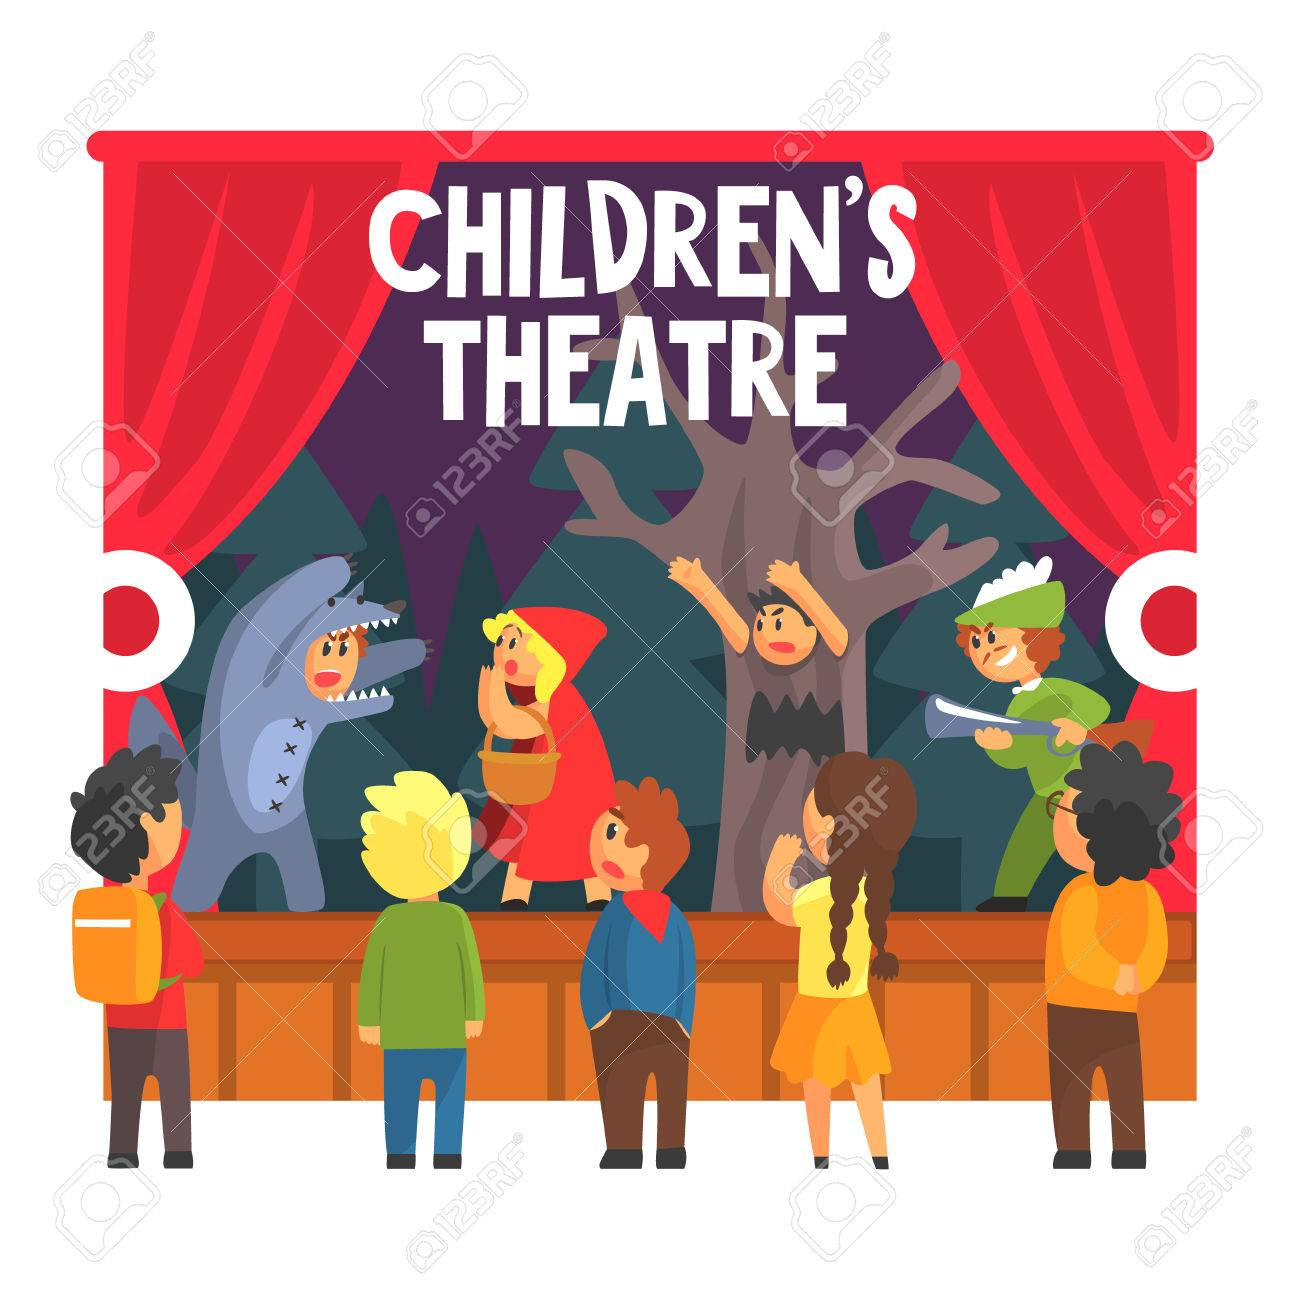 Children Actors Acting On Stage Of School Theatre In A Play For Royalty Free Cliparts Vectors And Stock Illustration Image 68717326